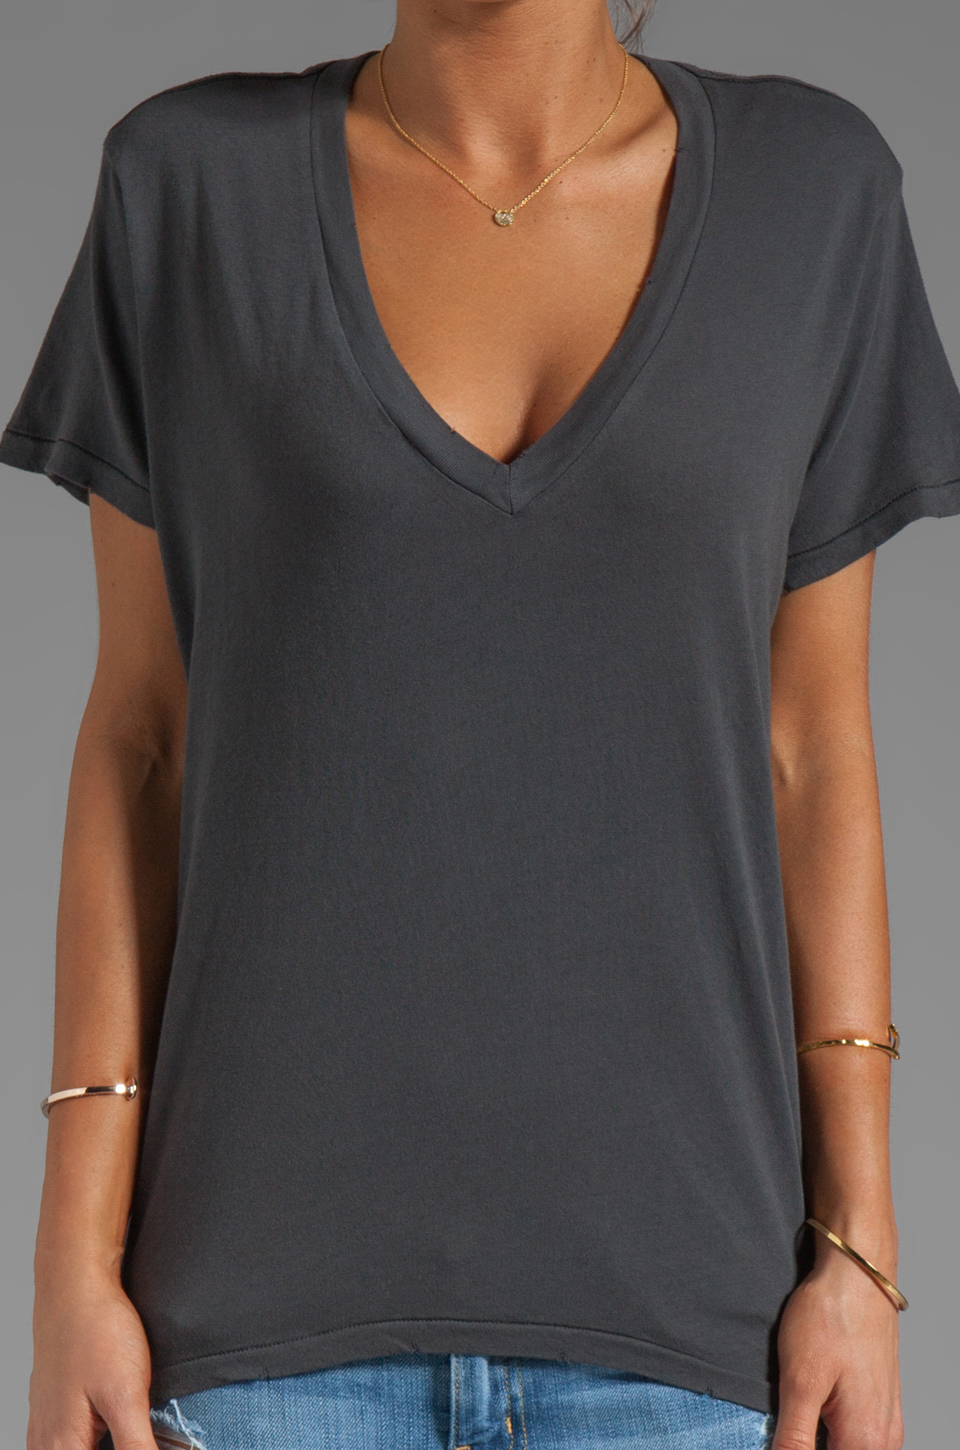 Current/Elliott The V Neck Tee in Dove Tail